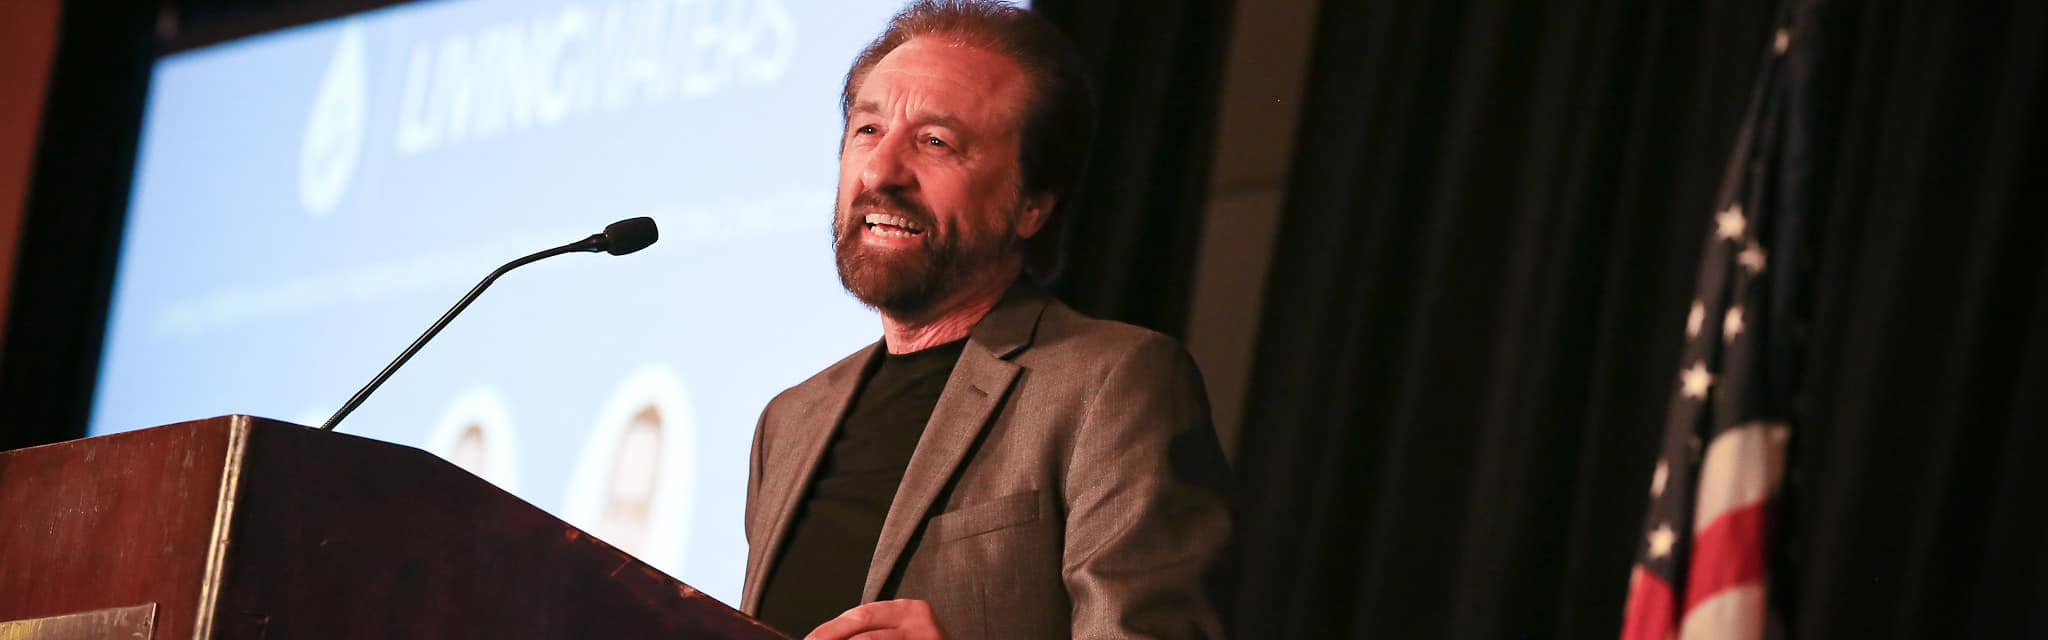 ray-comfort-speaking